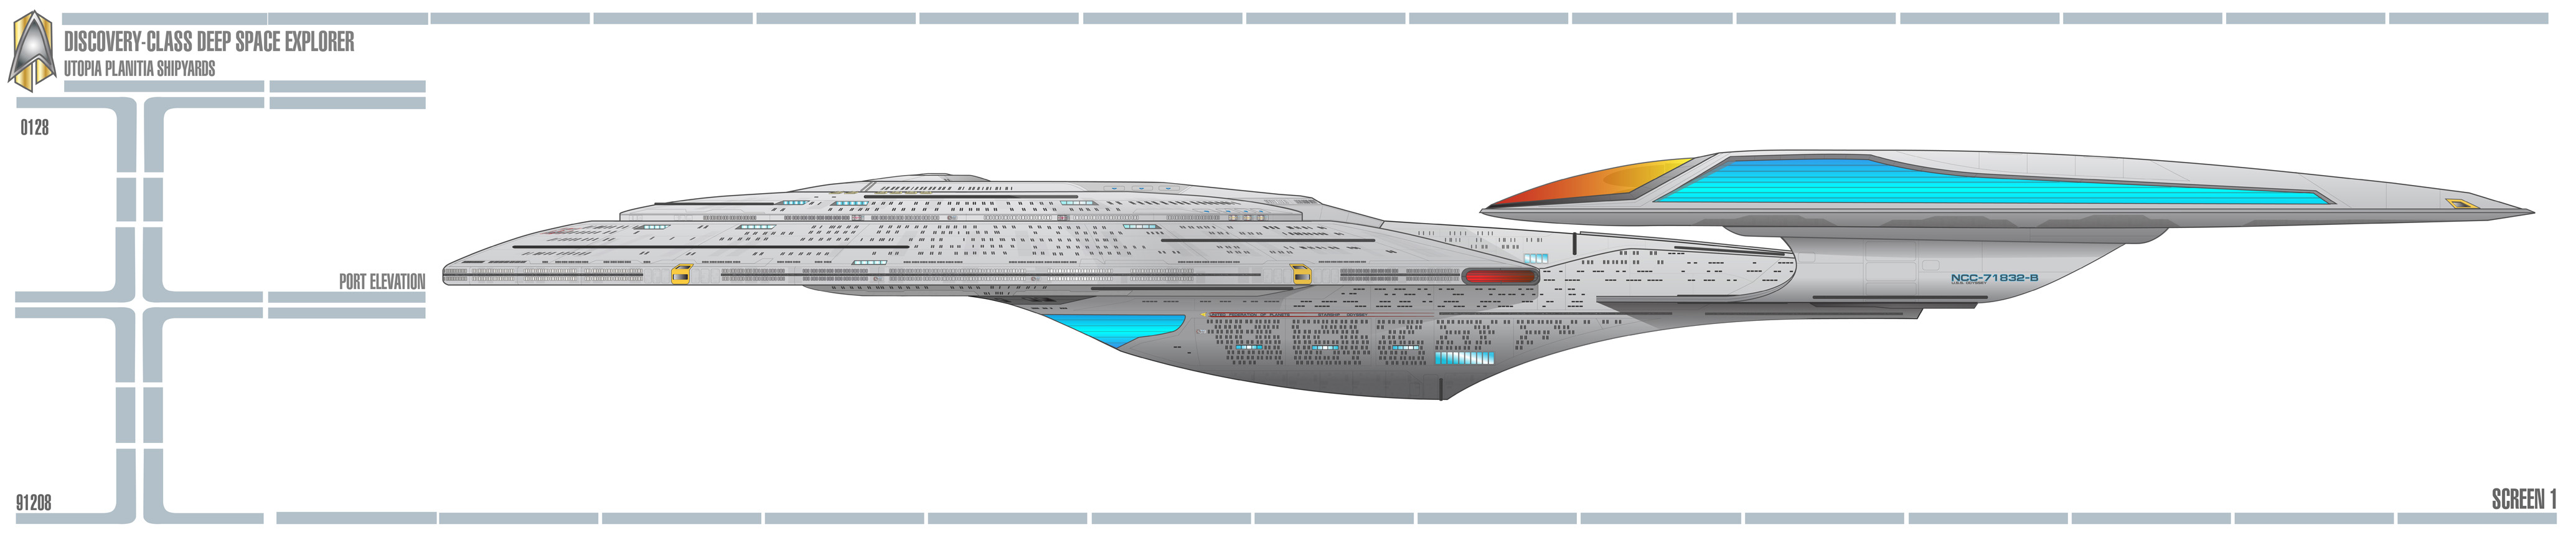 Discovery Uss Federation Starship Schematics Wire Center Solutions Lt2940 Fully Isolated Ac Power And Current Monitor Class Blueprints U S Odyssey Ncc 71832 B Rh Cygnus X1 Net Star Trek Bridge Schematic